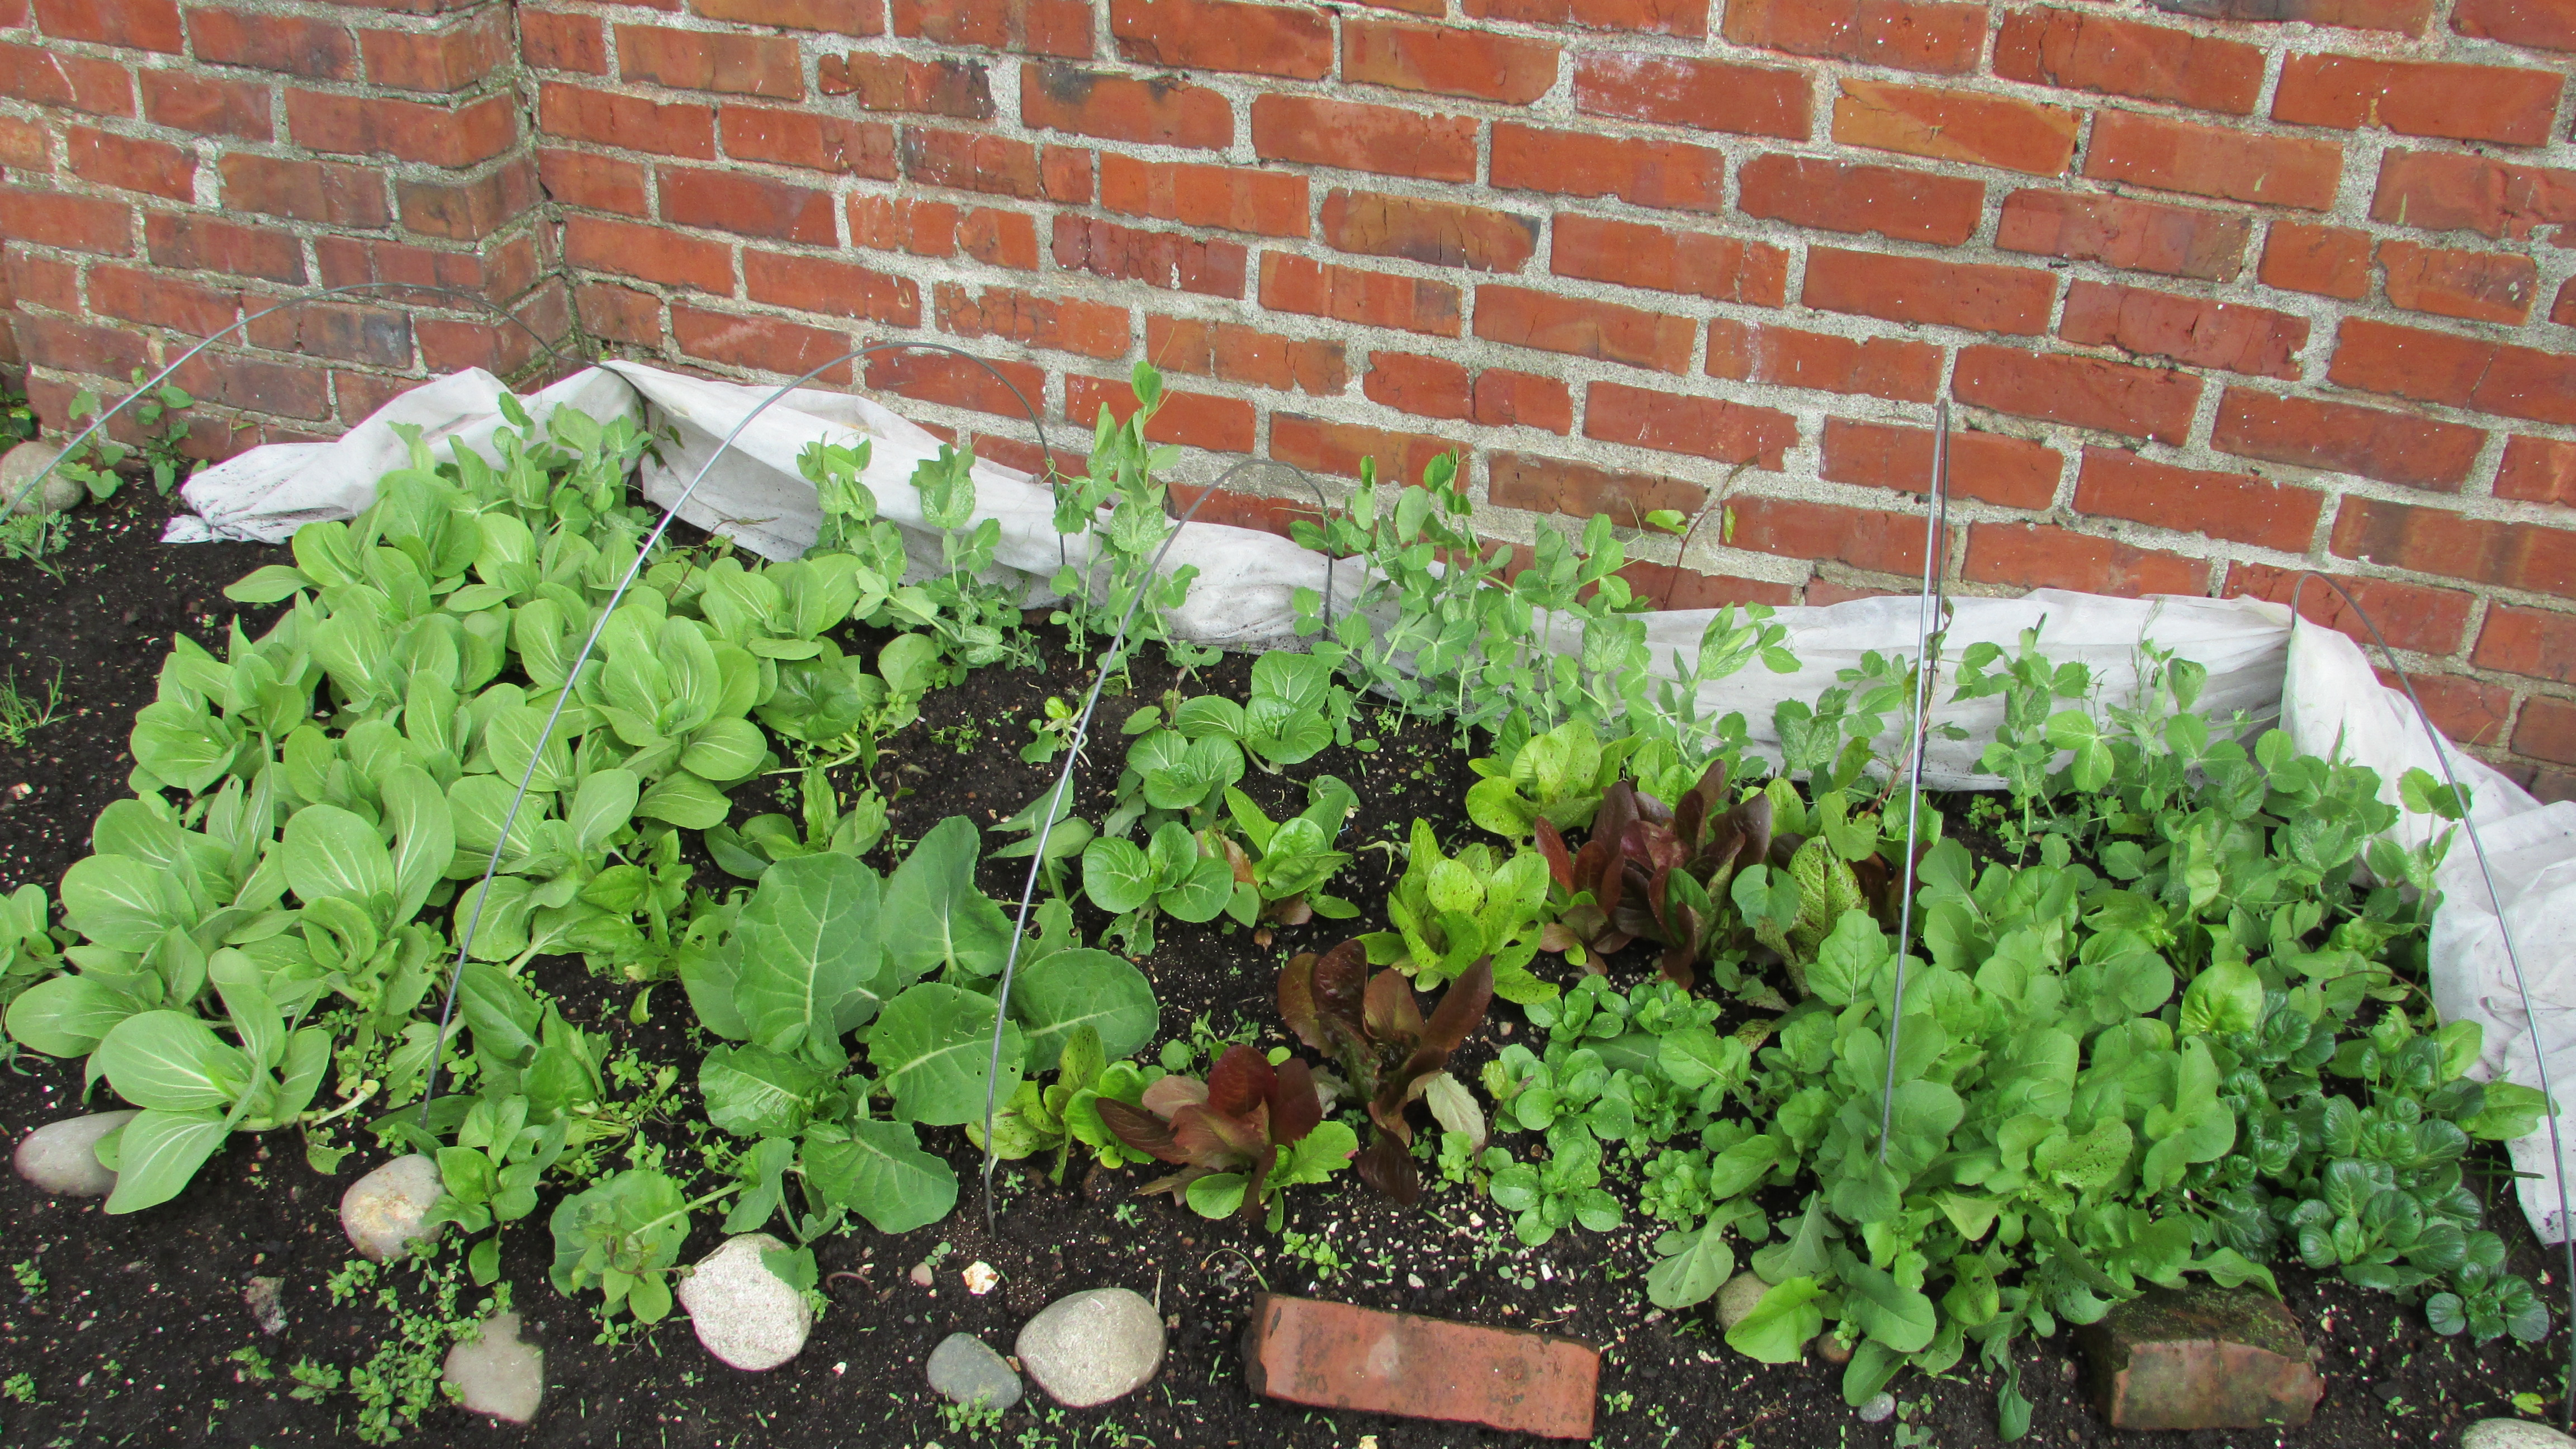 Early garden greens grown under row covers.